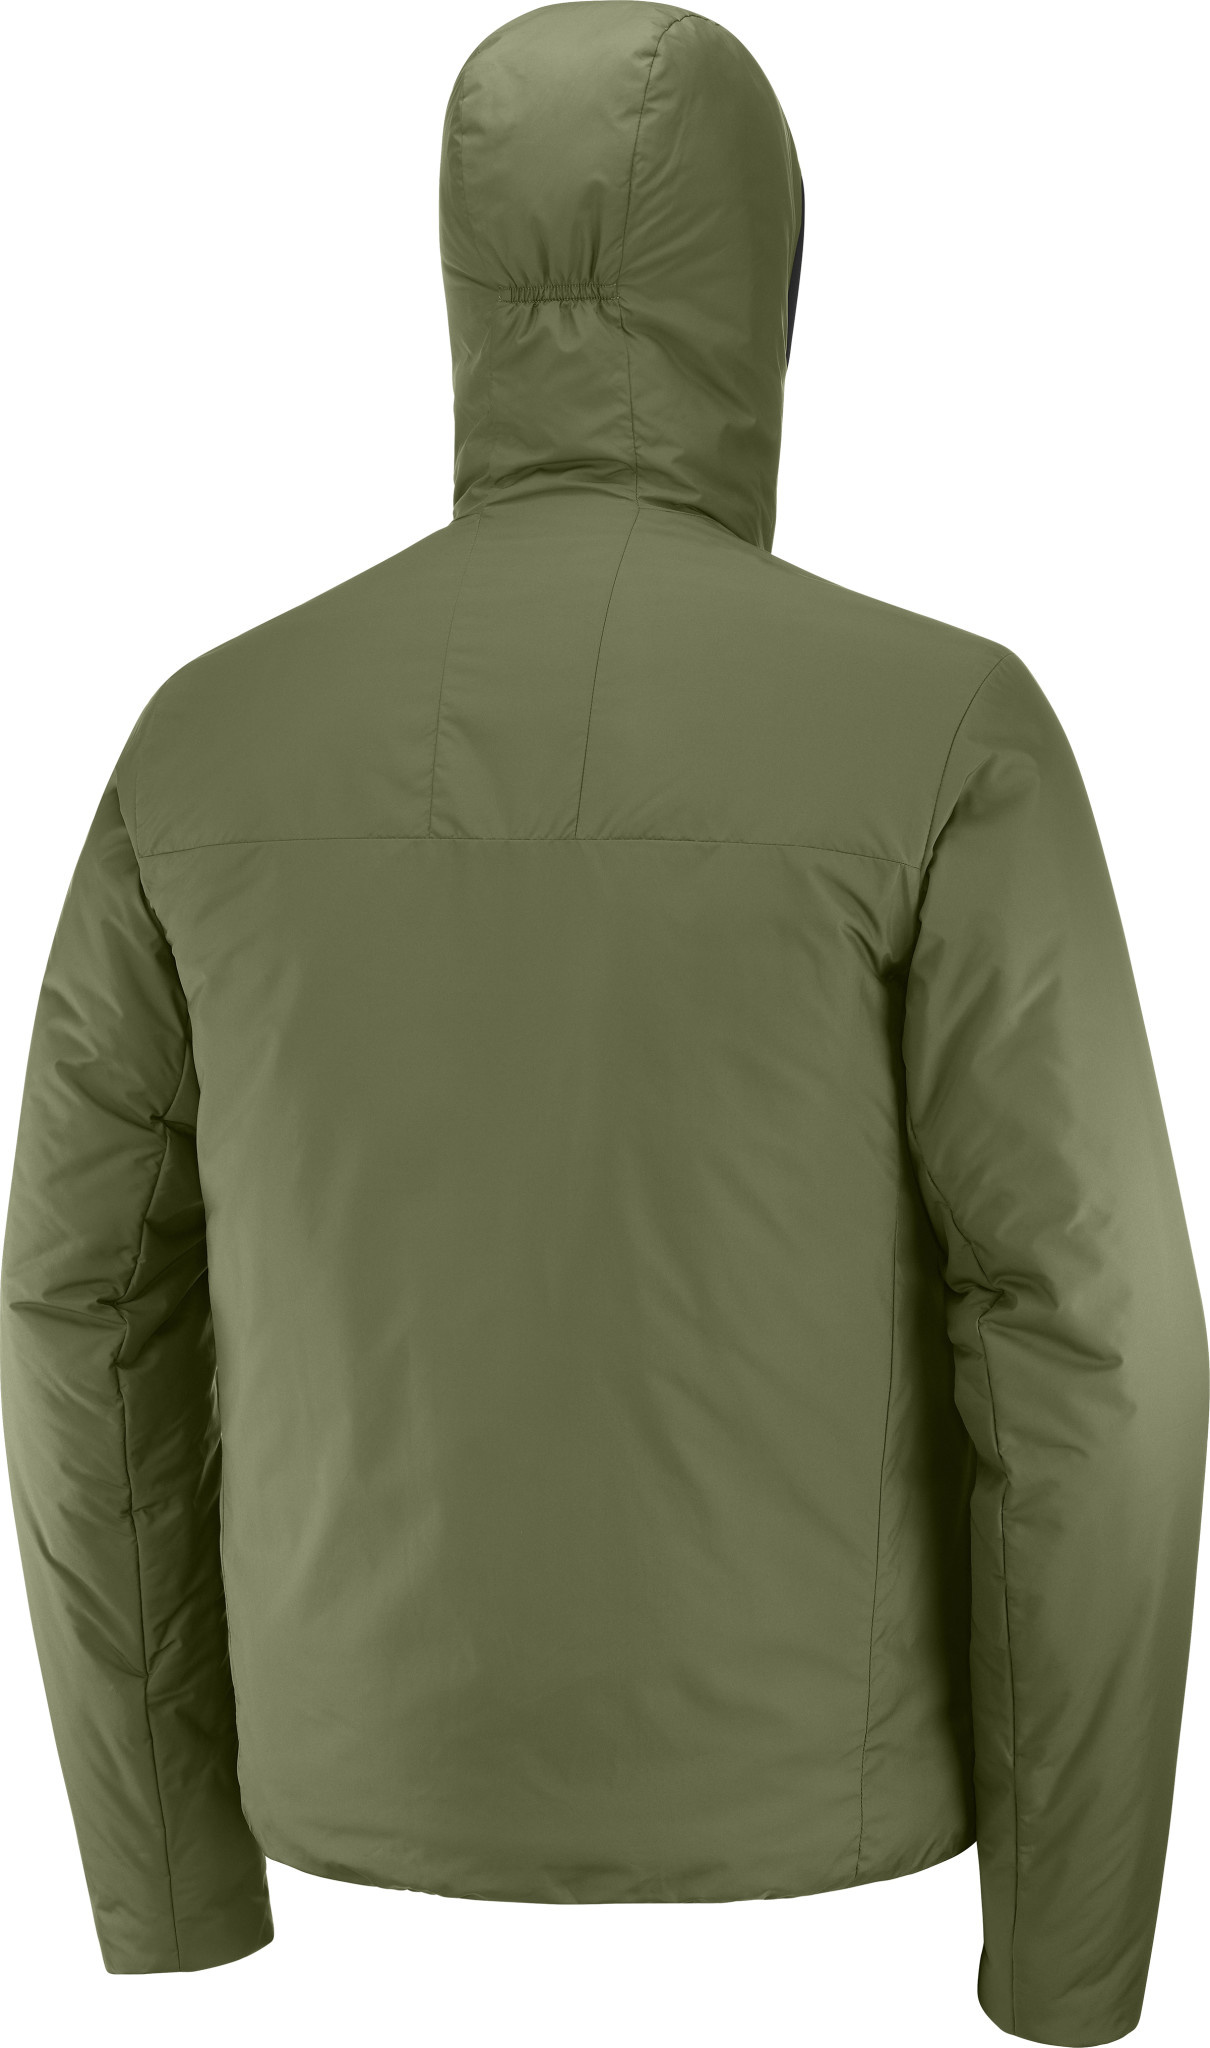 OUTRACK INSULATED HOODIE M-9